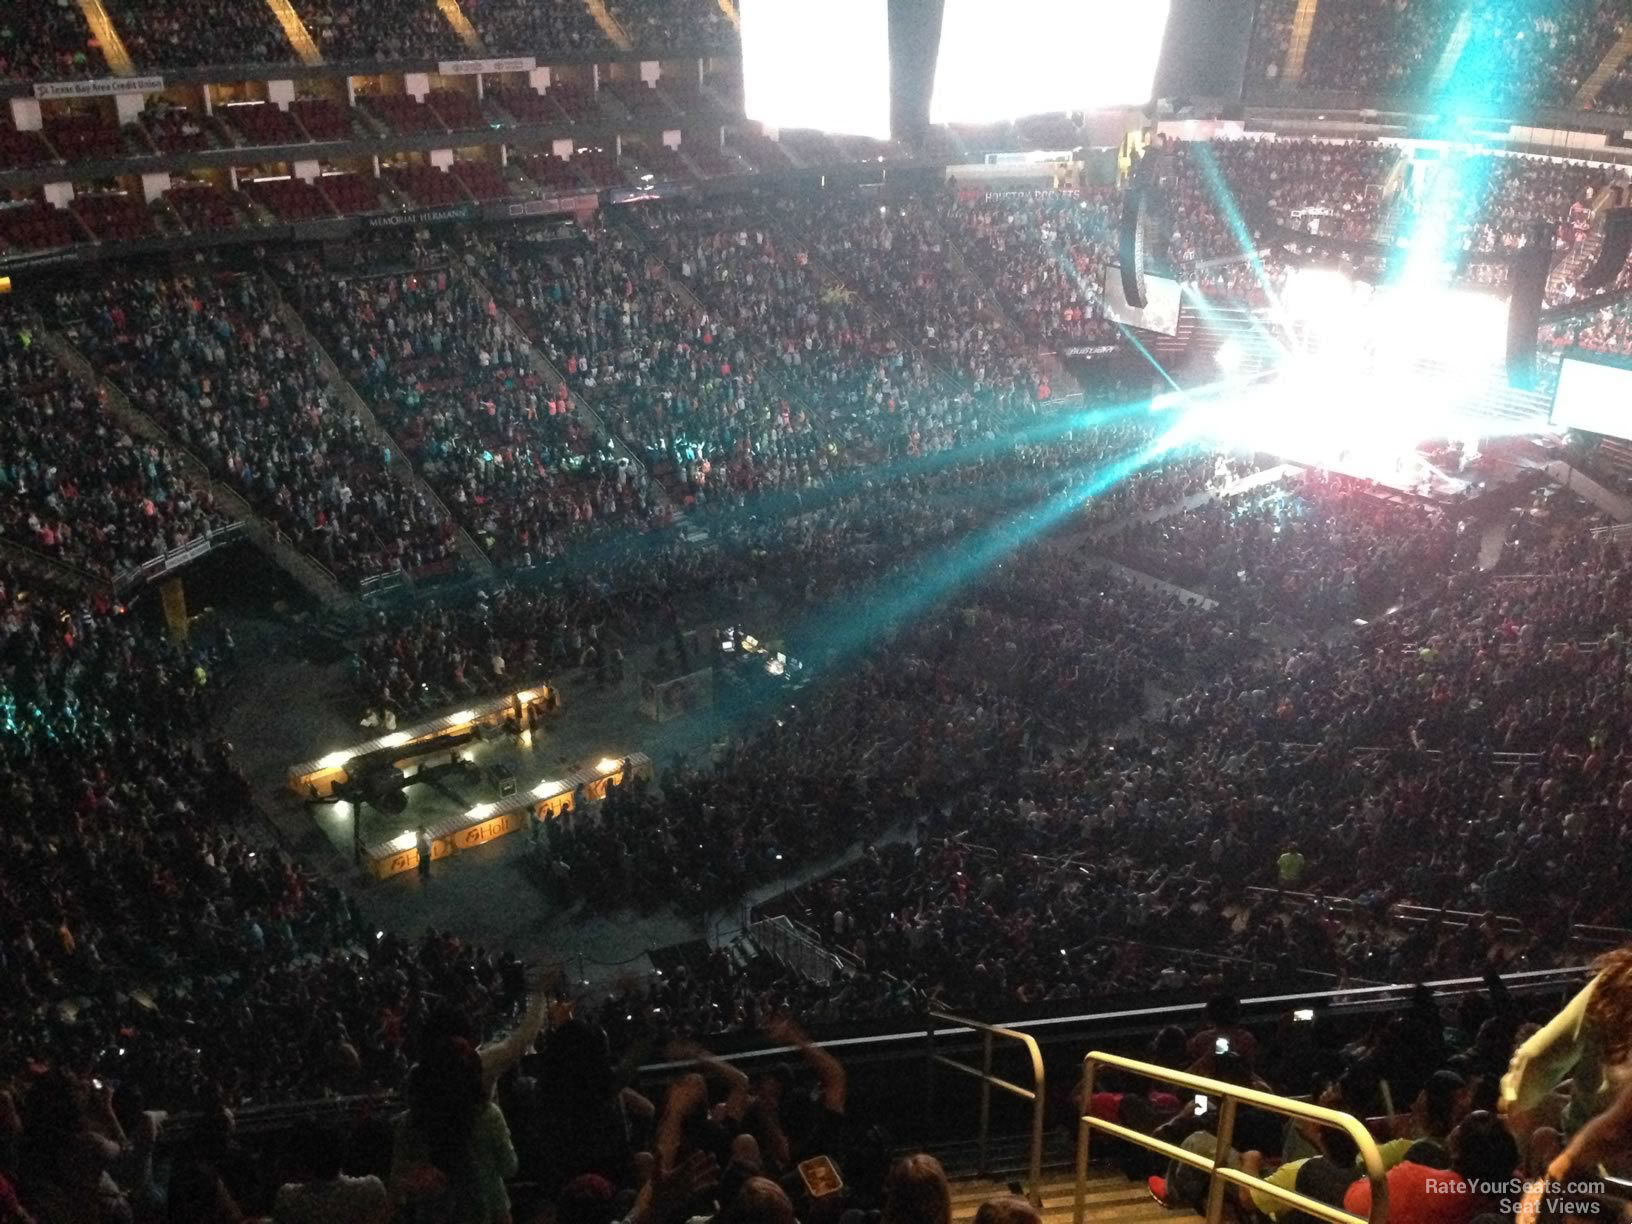 Toyota Center Section 414 Concert Seating Rateyourseats Com